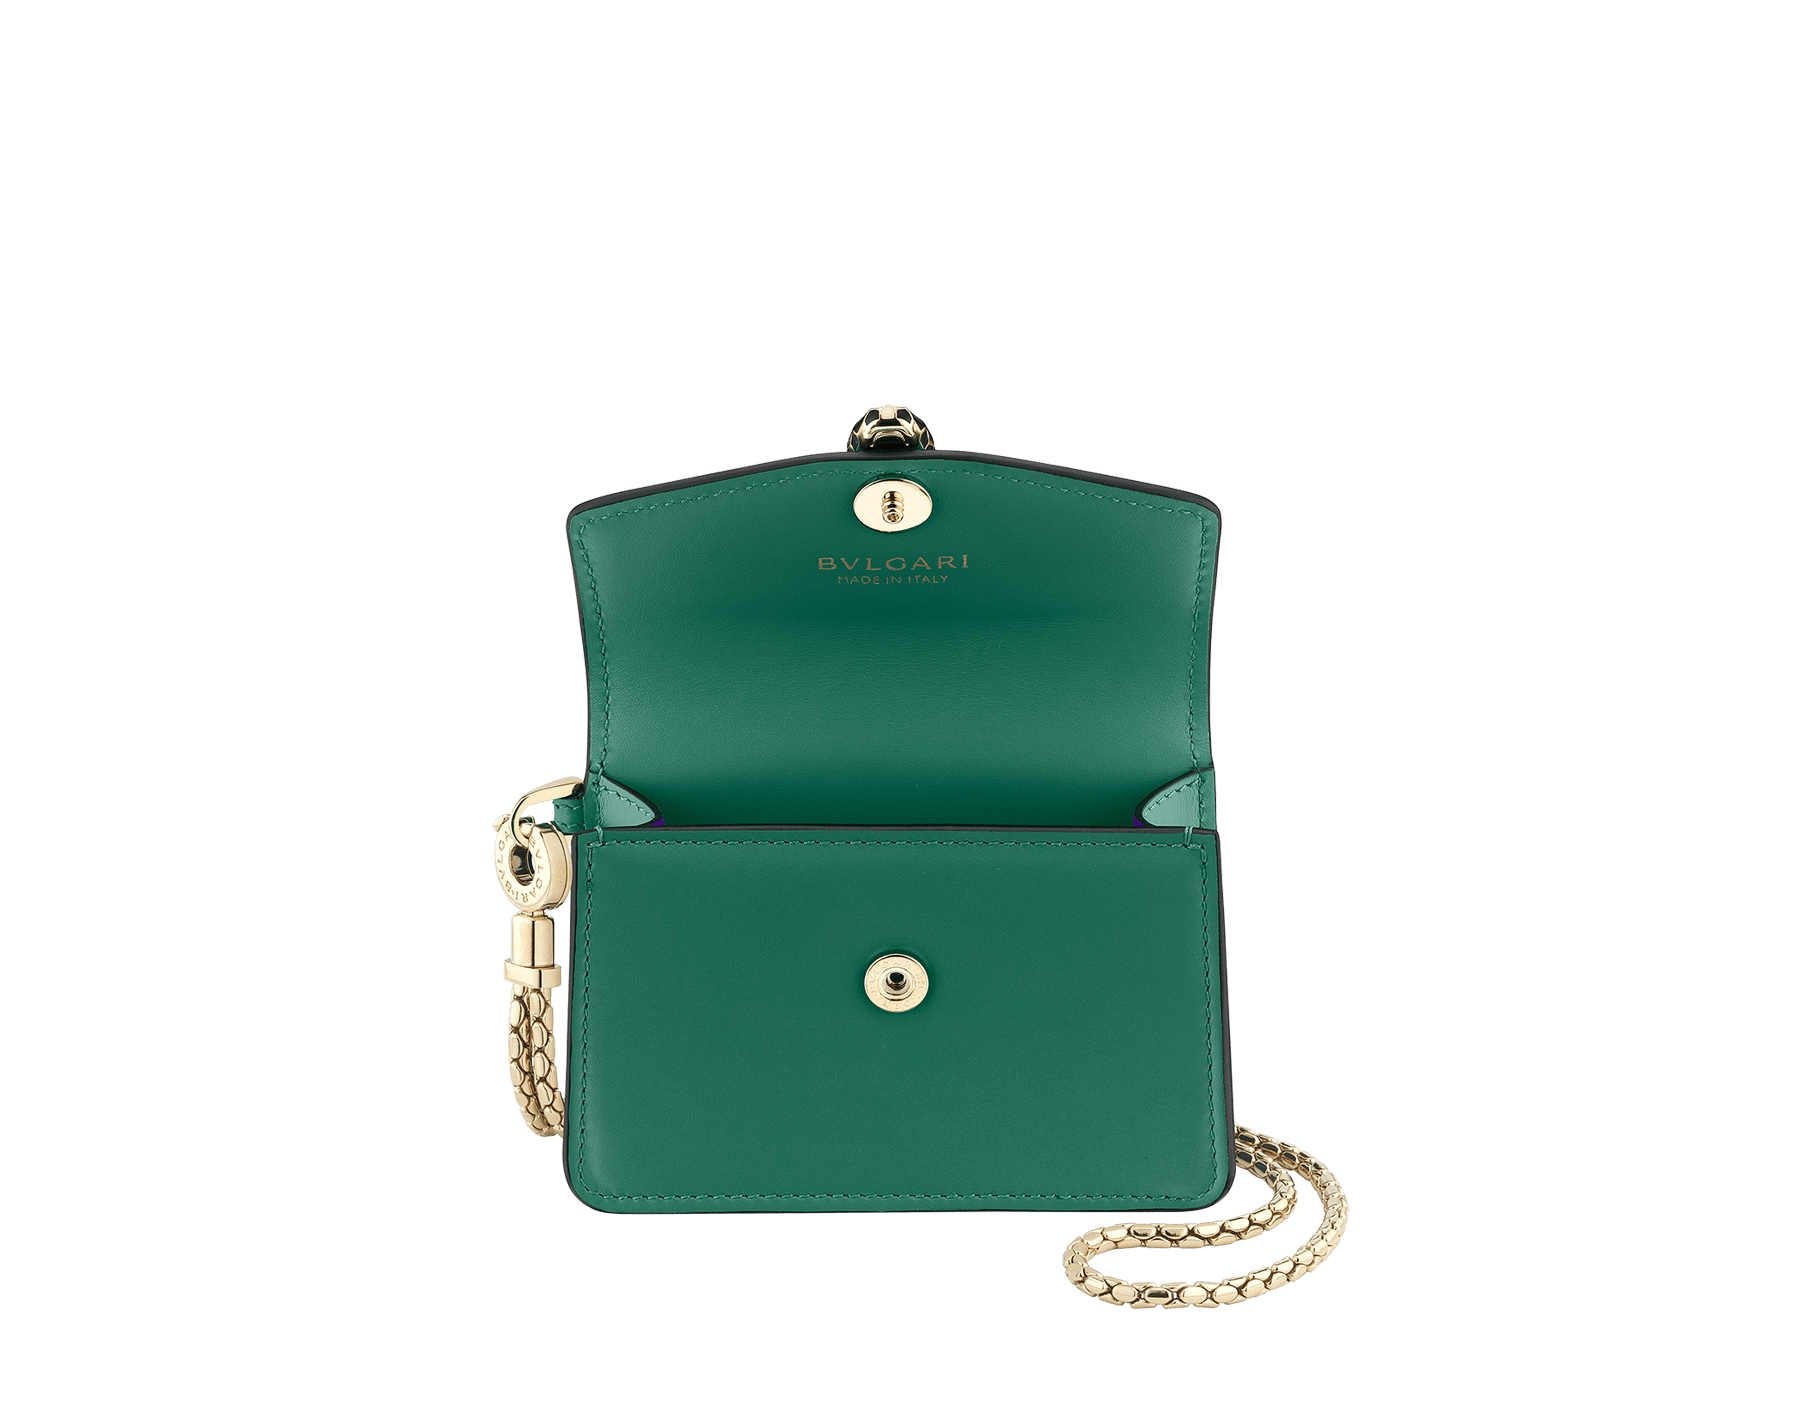 Serpenti Forever neck credit card holder in emerald green calf leather. Iconic snake head closure in black and white enamel, with green enamel eyes. 289099 image 2